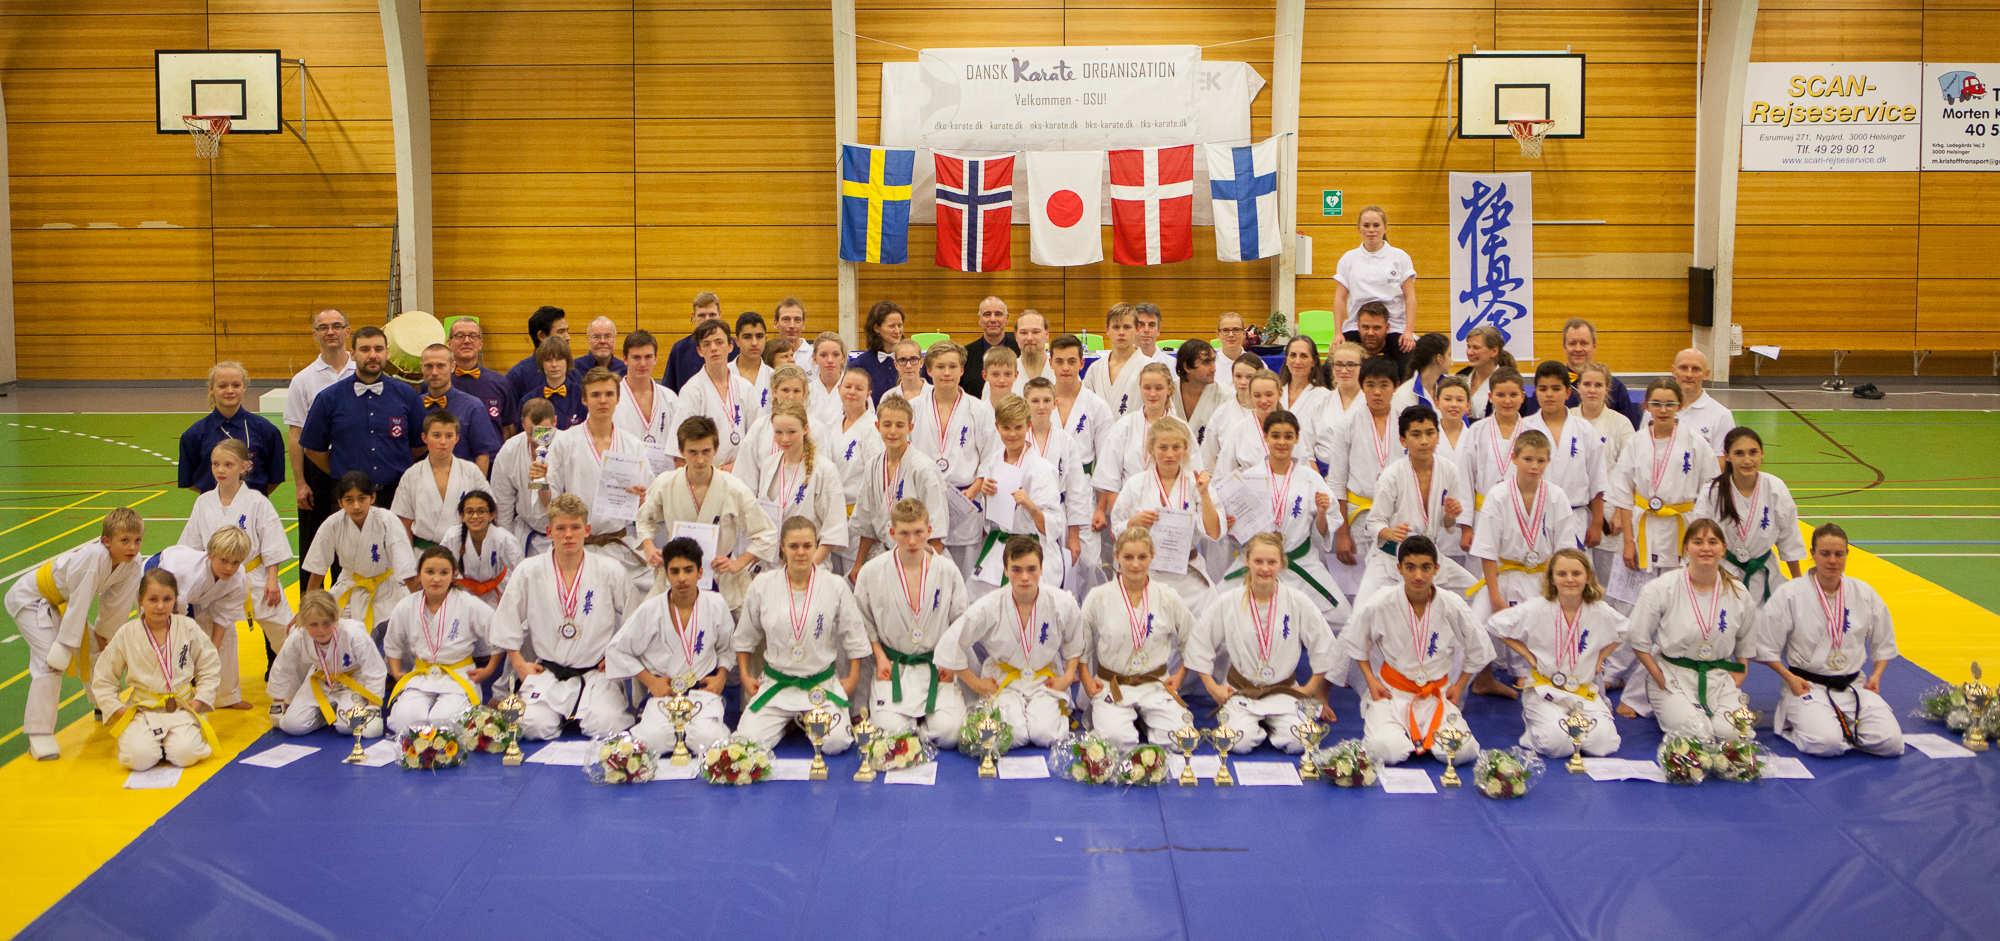 Danish So Kyokushin Championship and Scandinavian Friendly Match 2014